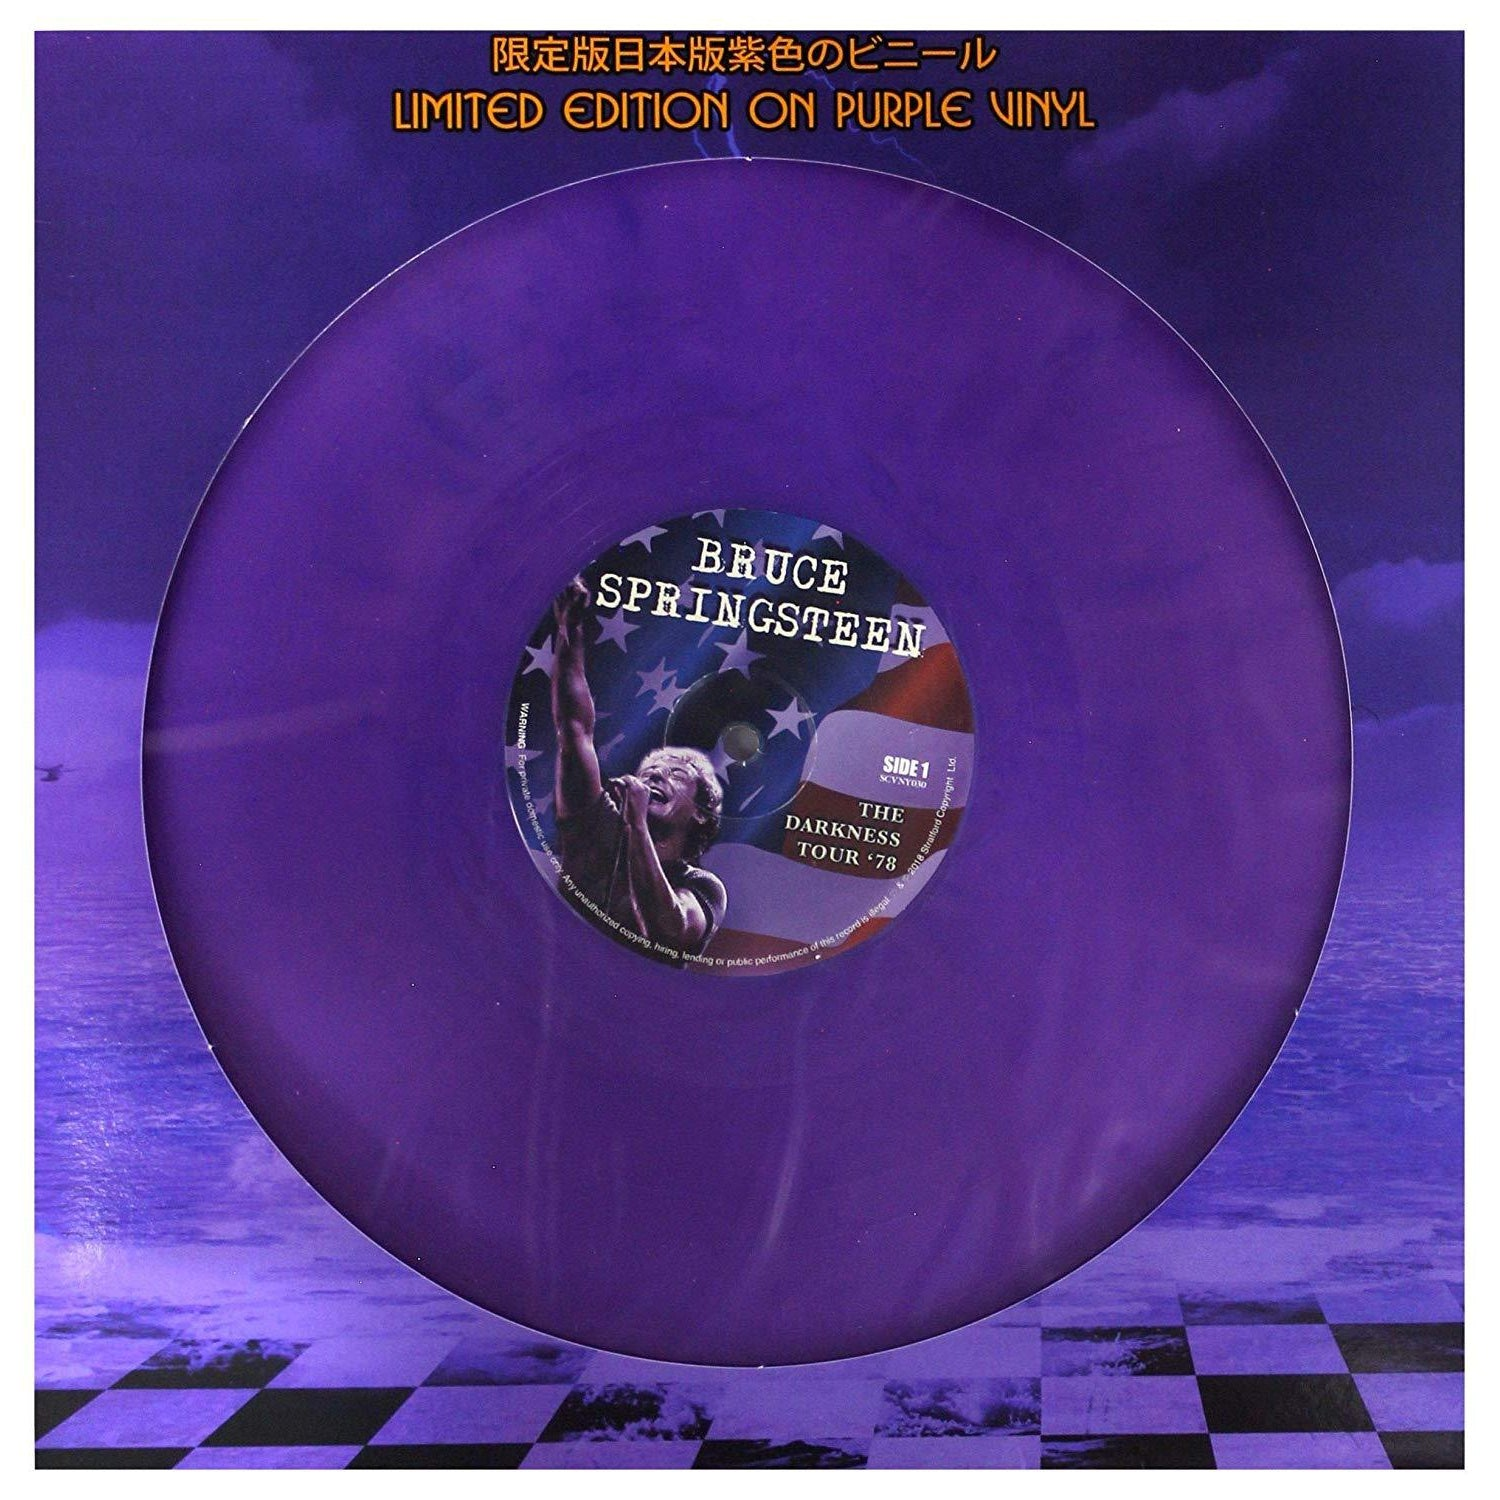 The Darkness Tour '78 (Limited Edition on Purple Vinyl) [Vinyl]